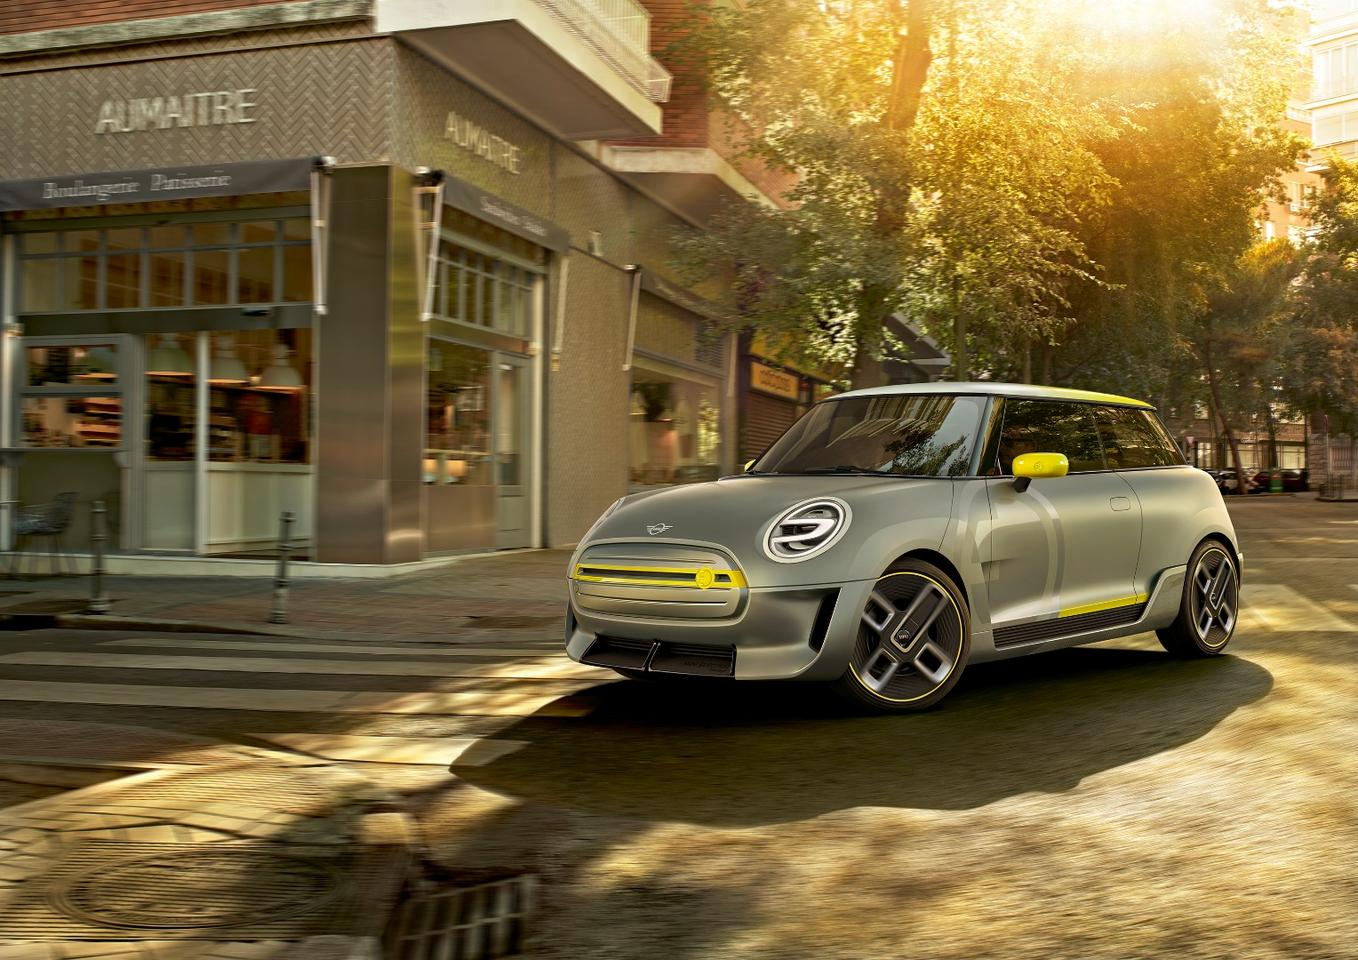 The new Mini Electric Concept will debut in September